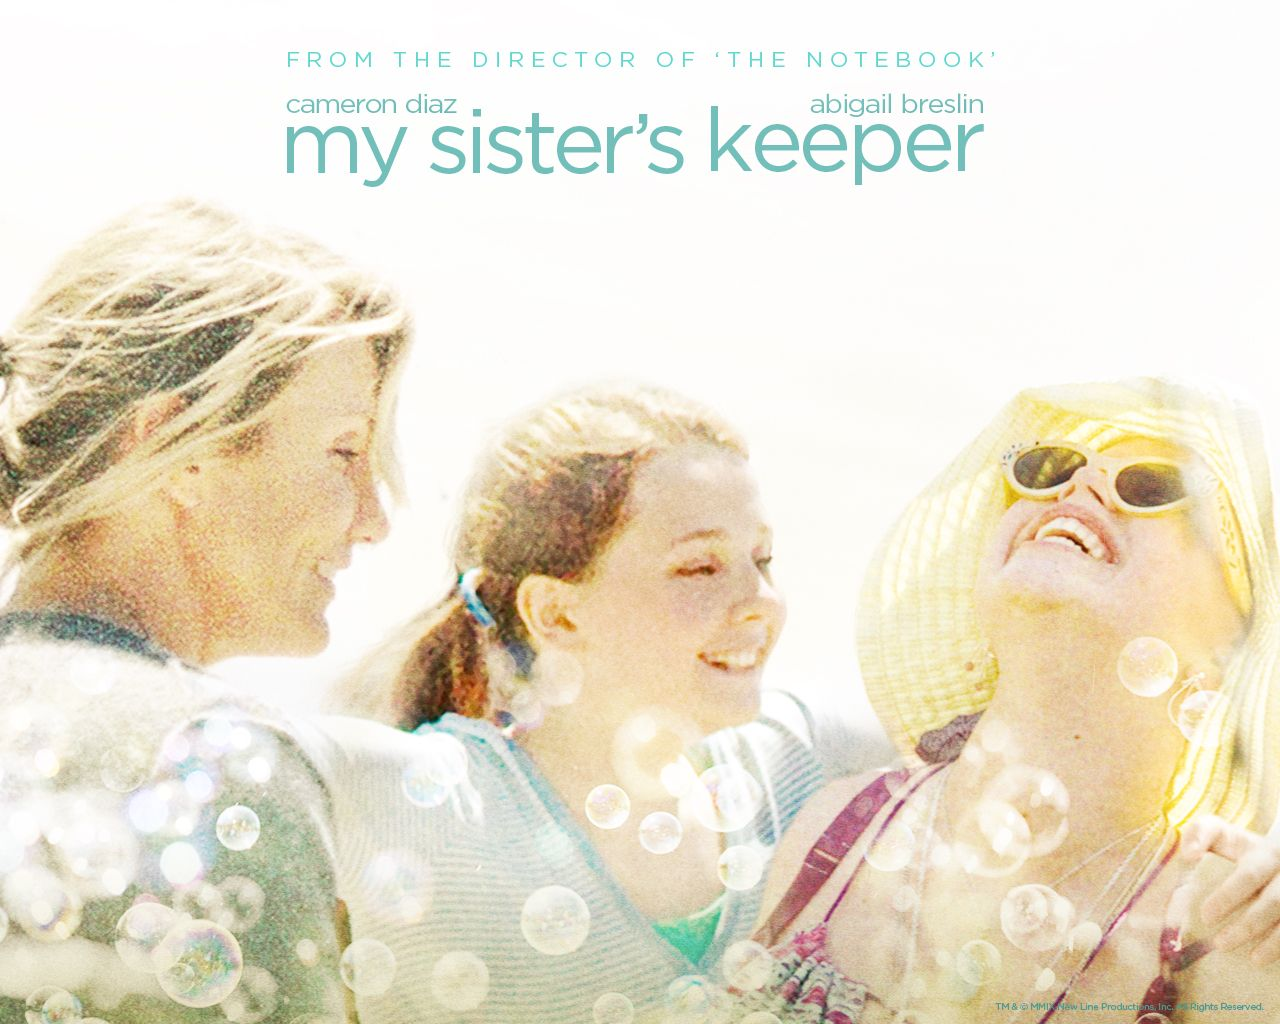 summary on my sisters keeper My sister's keeper is a 2004 novel written by jodi picoult  summary edit the story takes place in the fictional town of upper darby, rhode island in 2004.